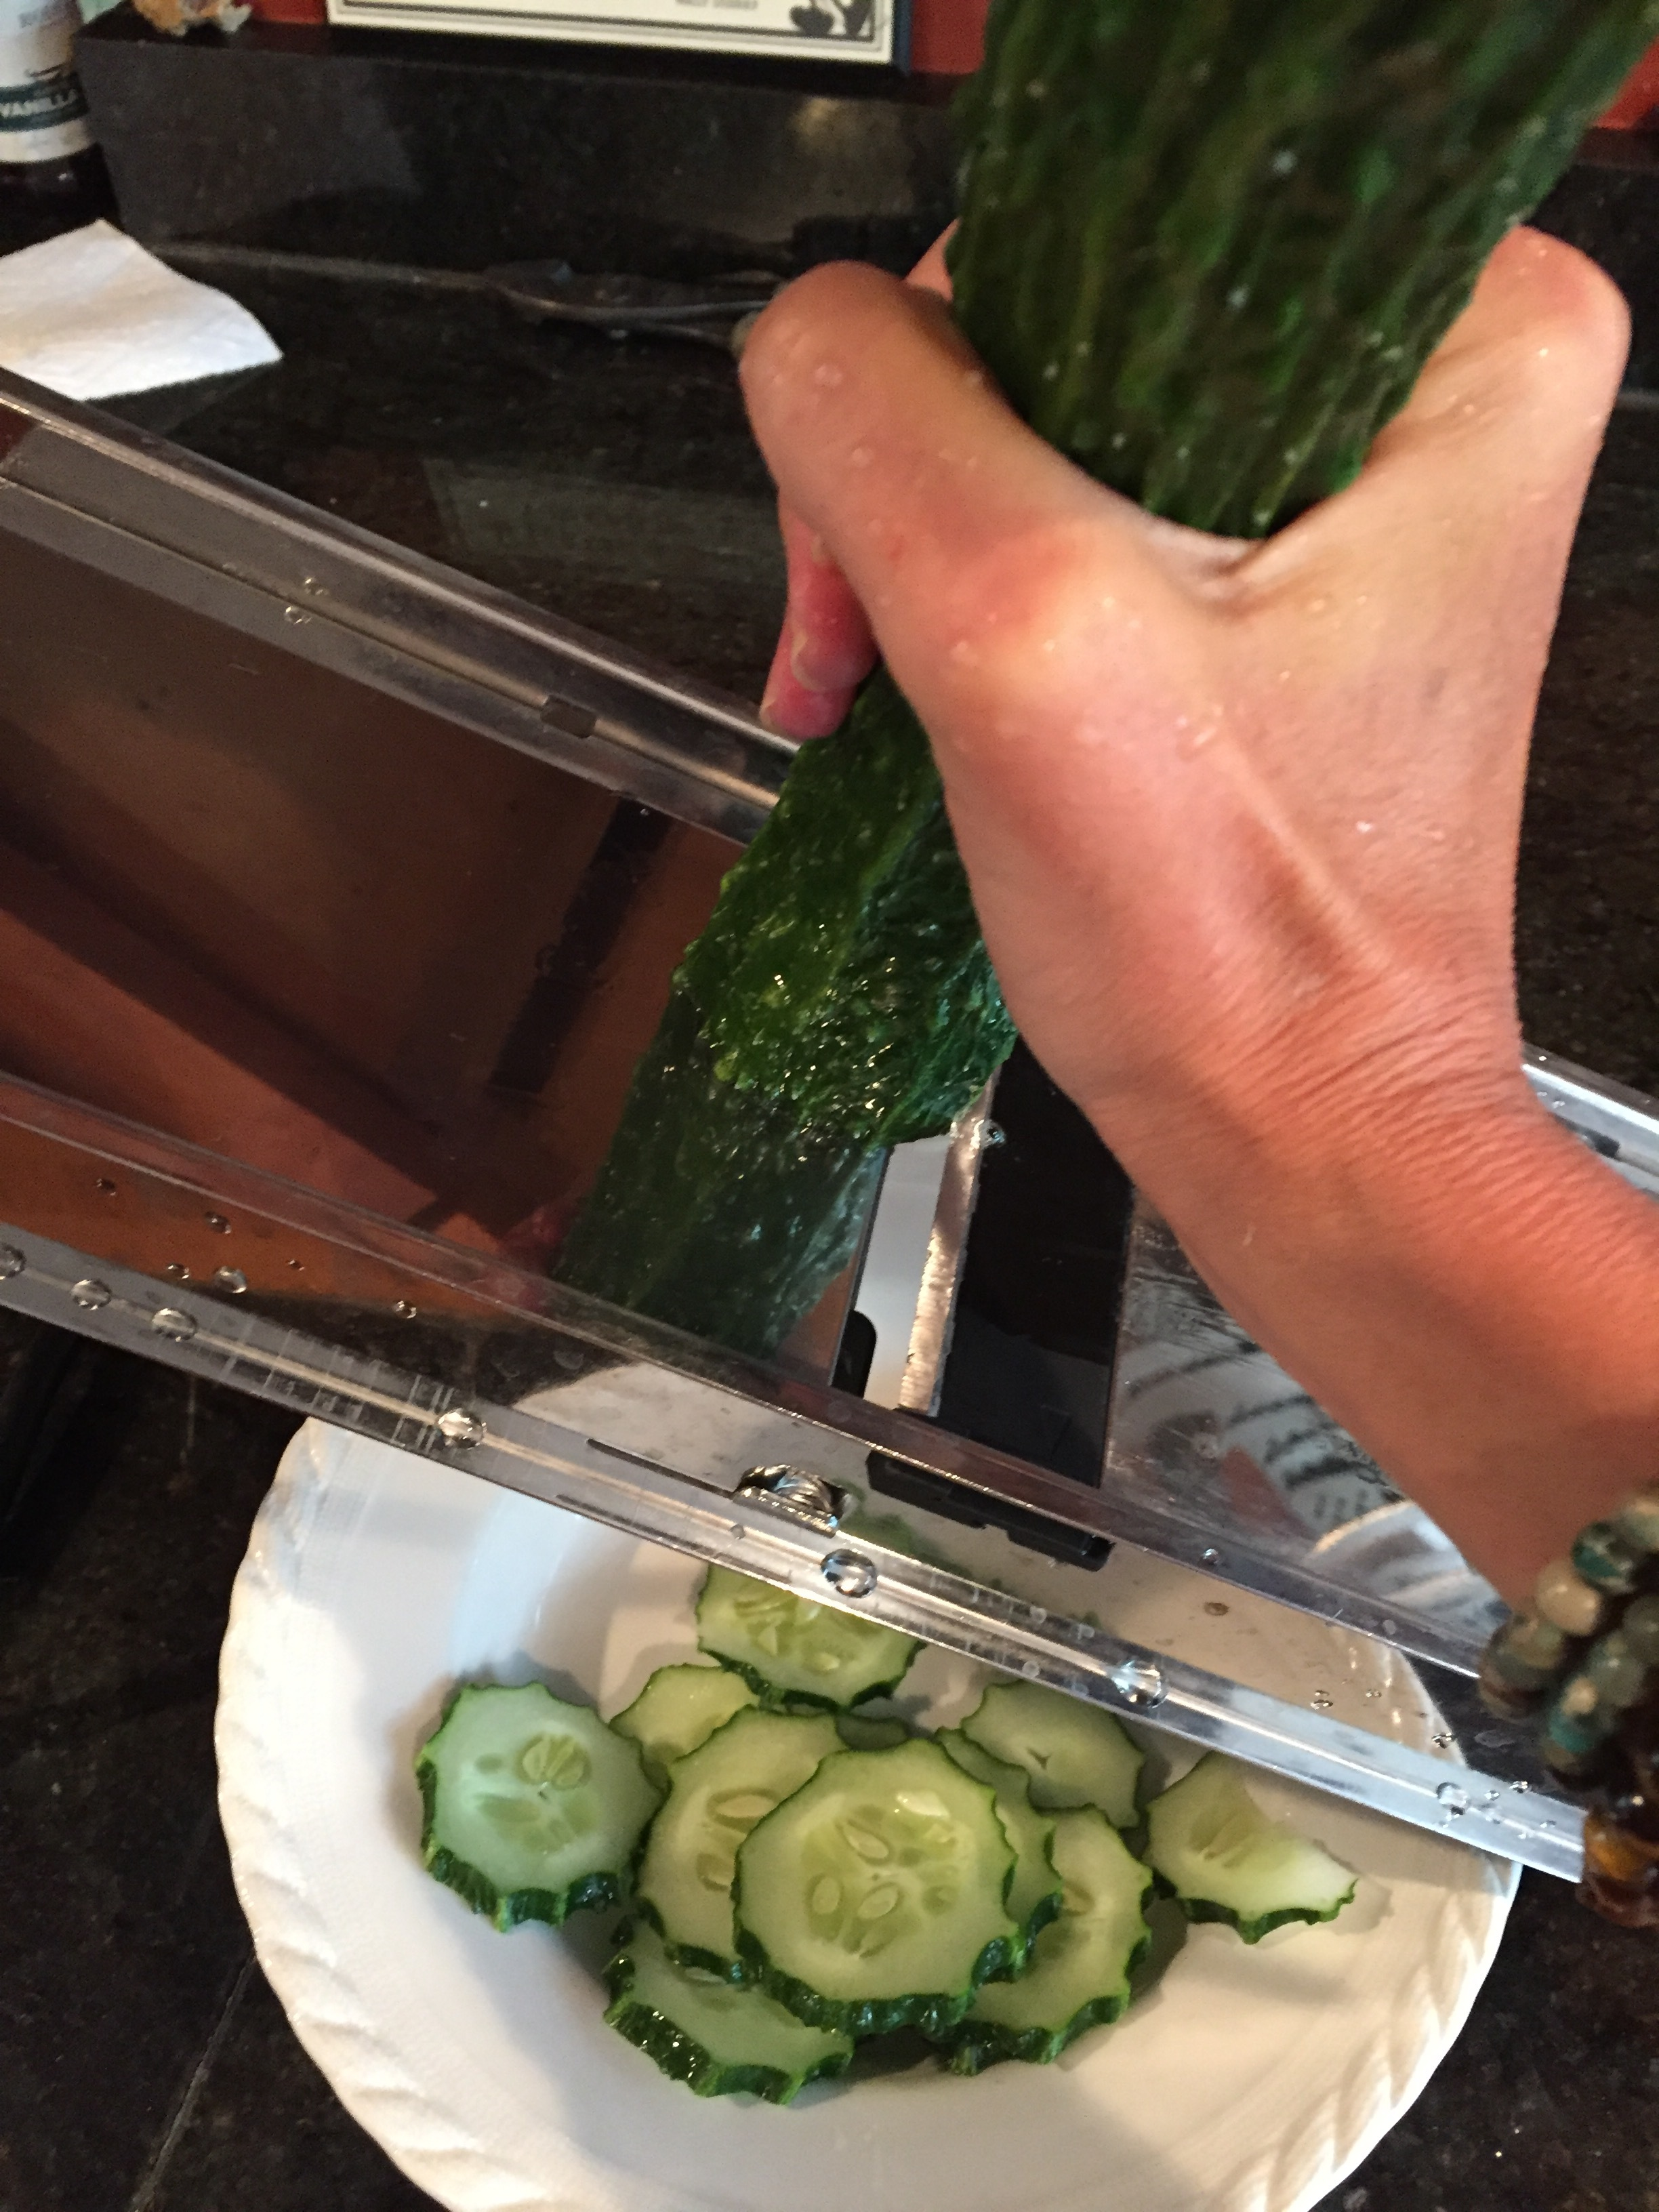 Slicing-cucumber_5500.JPG